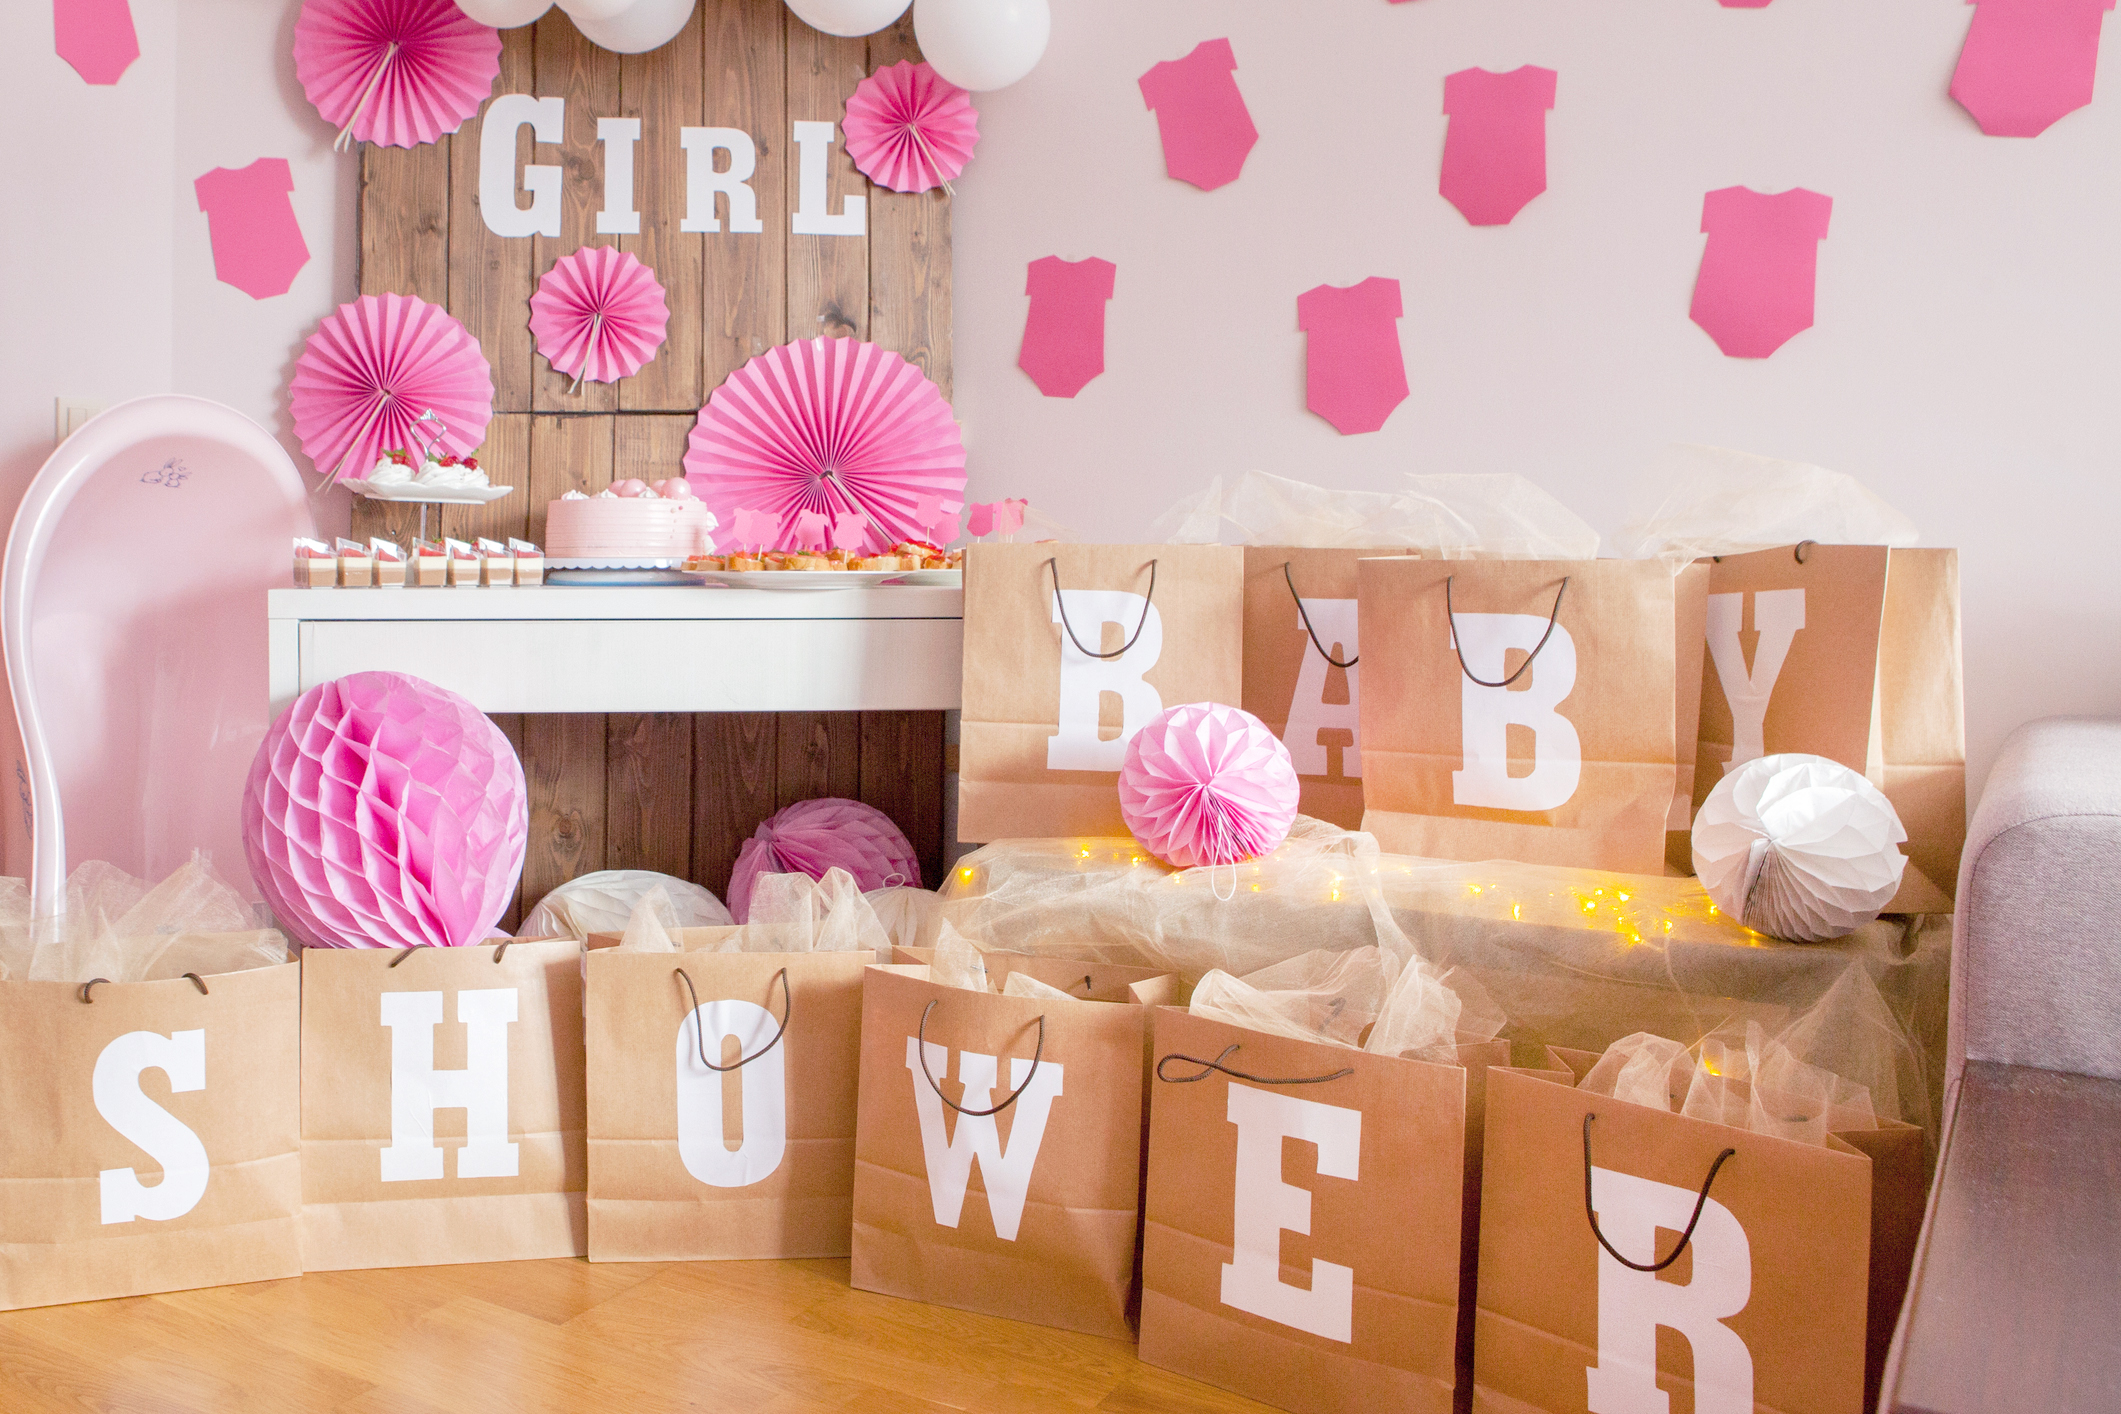 20+ DIY Baby Shower Decorations That Are Easy & Adorable | LoveToKnow